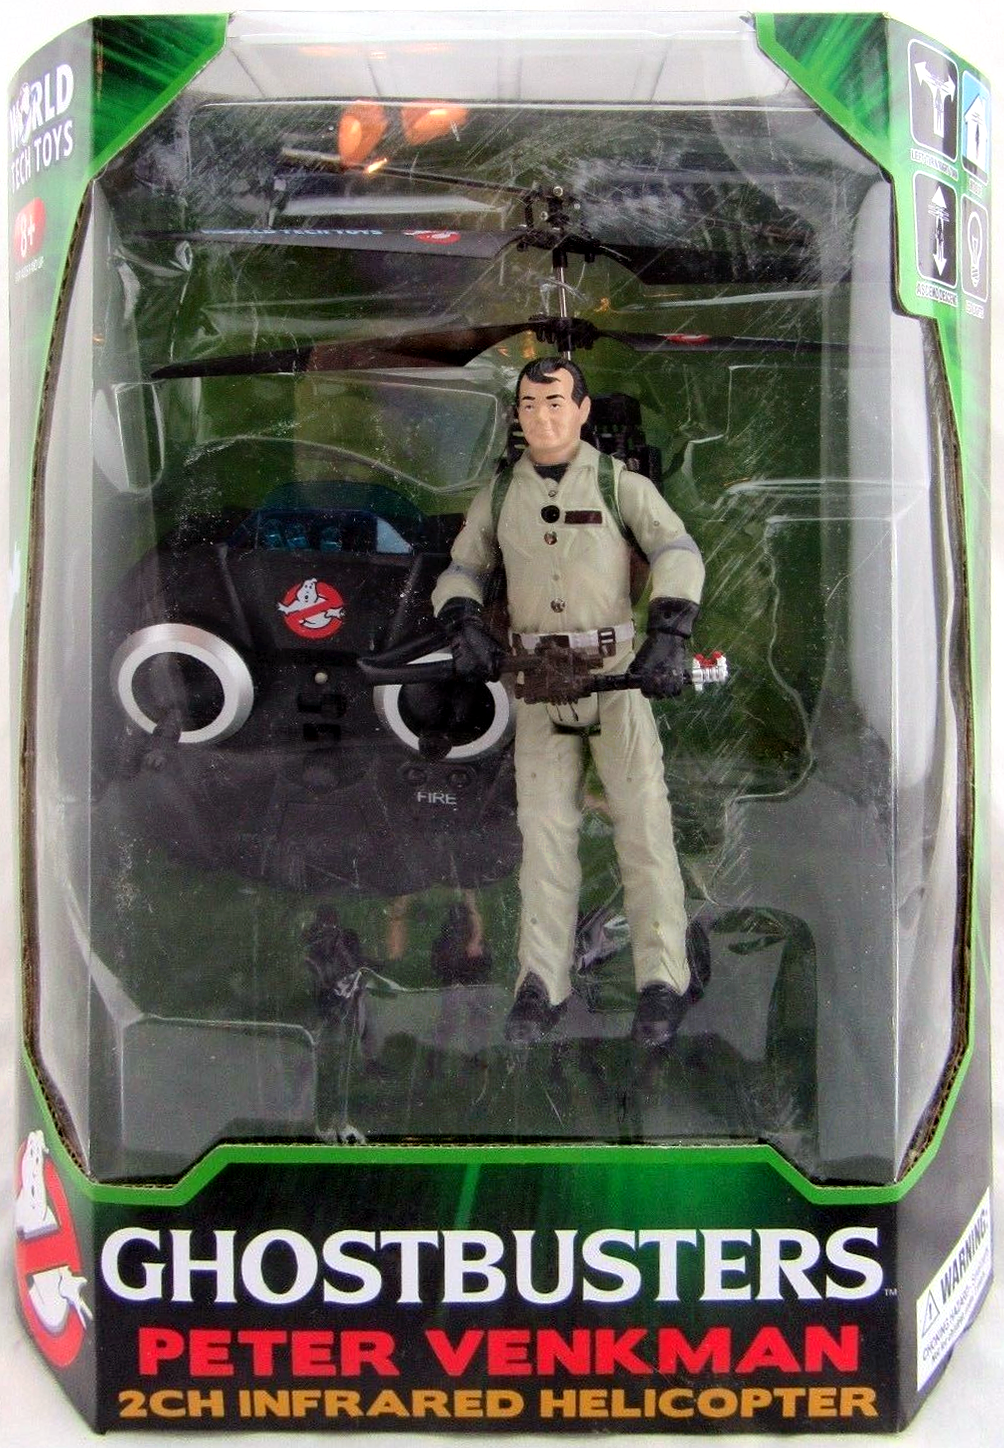 World Tech Toys: Peter Venkman 2Ch Infrared Helicopter